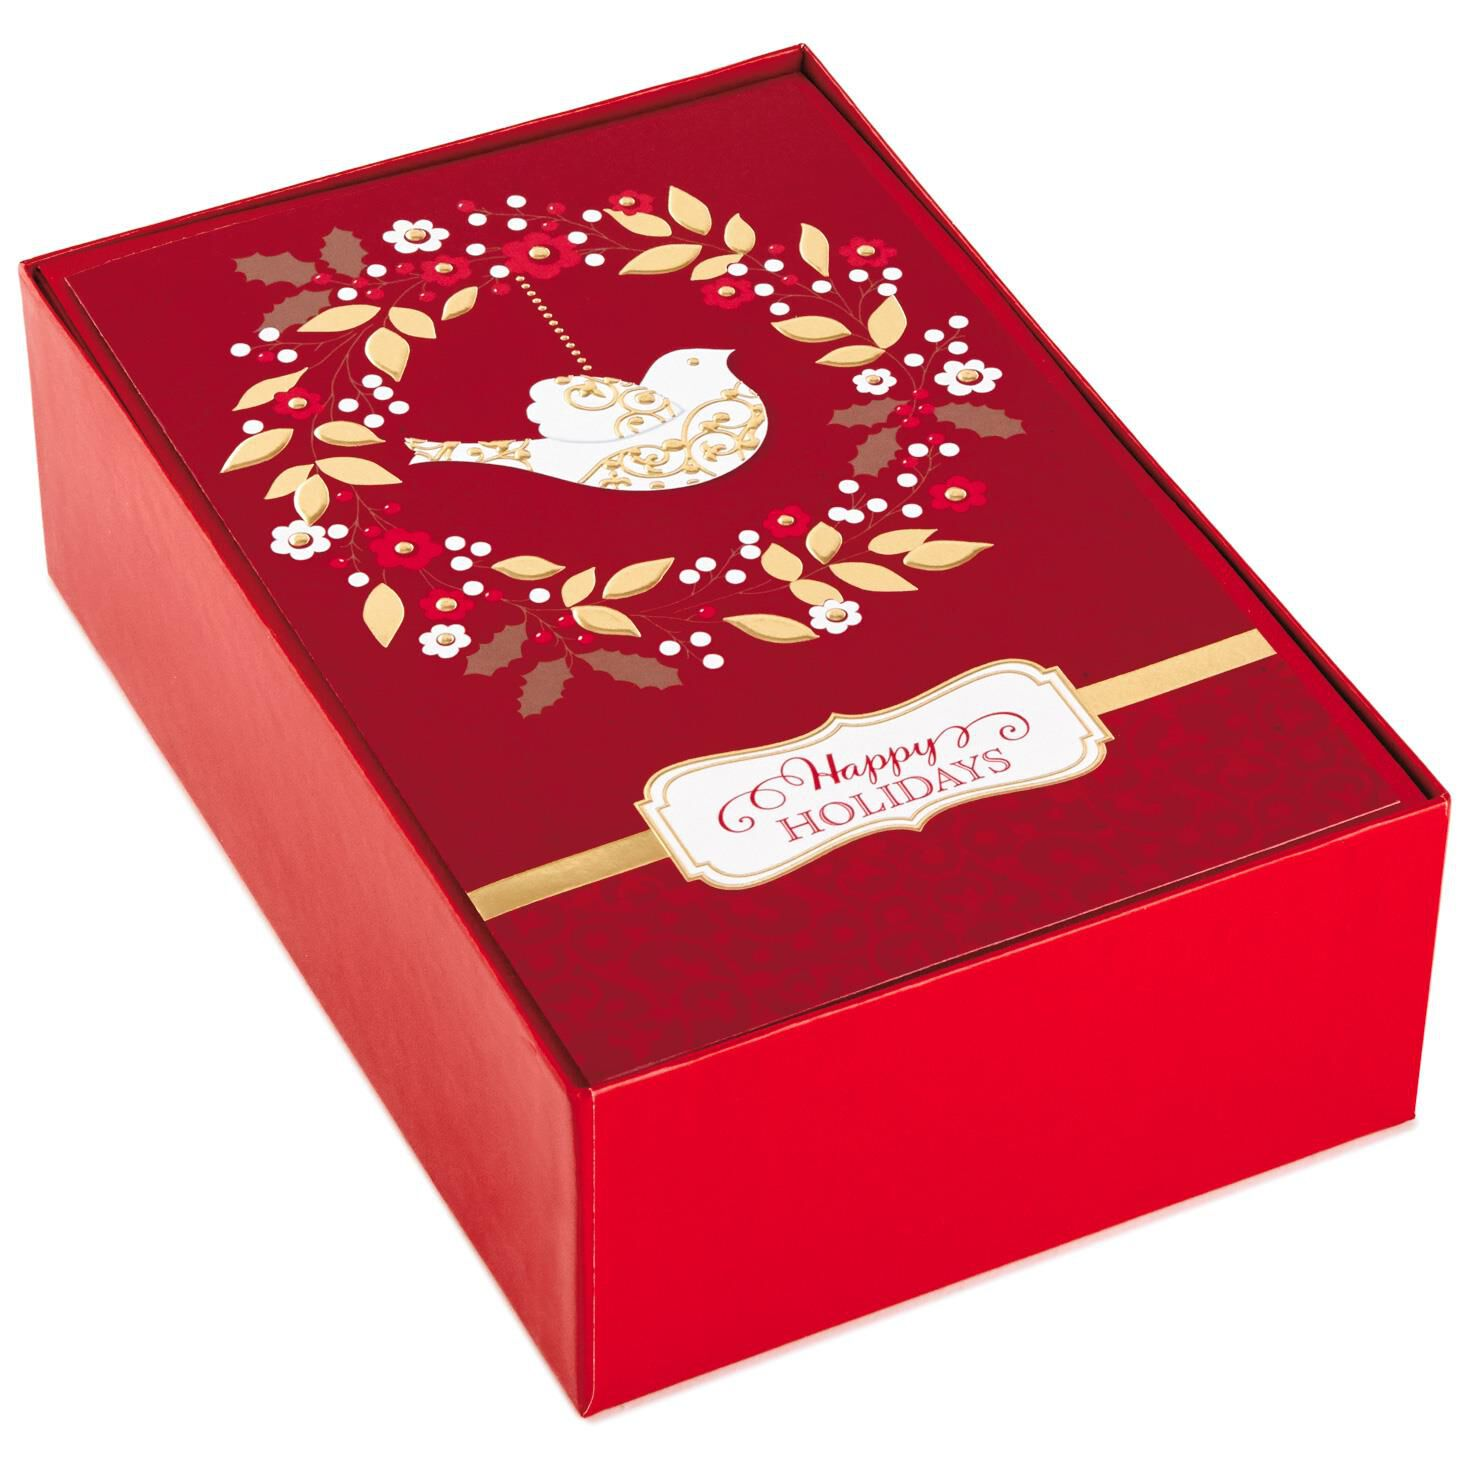 Wreath With Dove Christmas Cards, Box of 40 - Boxed Cards - Hallmark